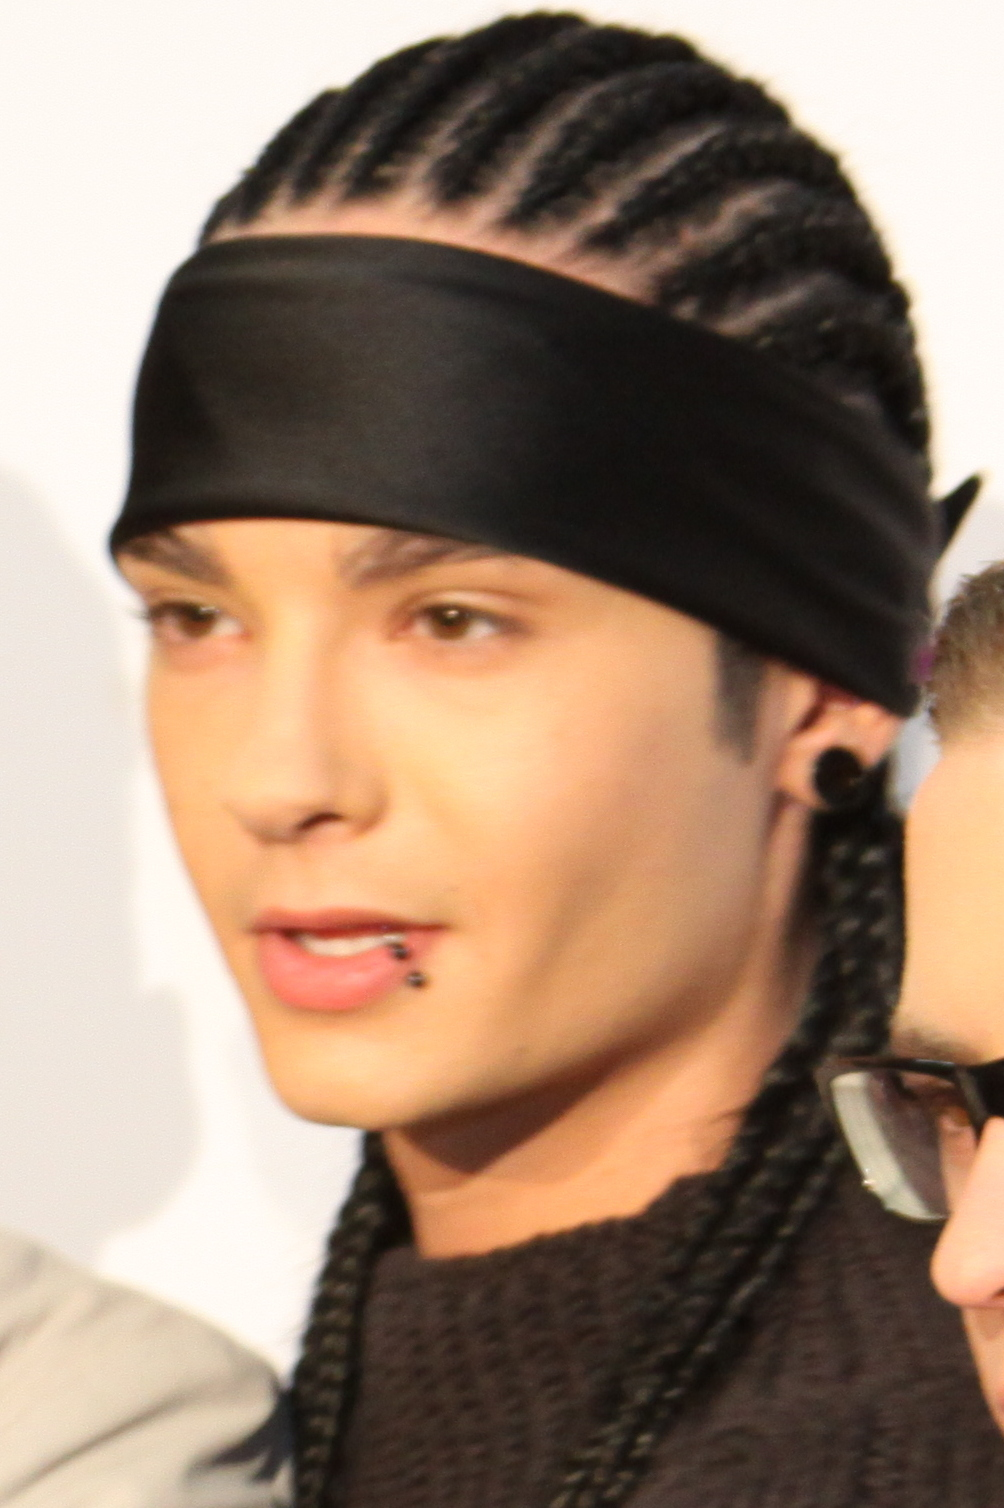 The 28-year old son of father Jörg and mother Simone Tom Kaulitz in 2018 photo. Tom Kaulitz earned a  million dollar salary - leaving the net worth at 28 million in 2018